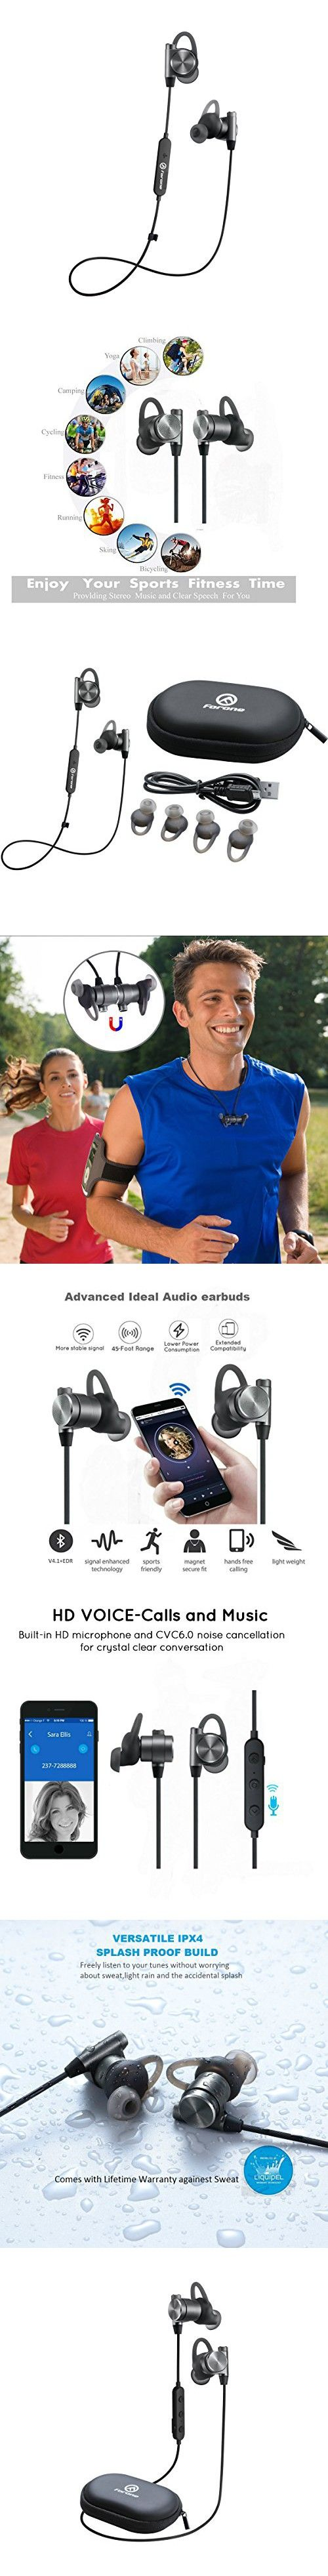 Wireless Bluetooth Earbuds | Forone Magnetic Headphones with Super Bass | IPX4 Waterproof Noise-Cancelling Headset with Mic | Fitness, Exercise, Running, Gym,Sports